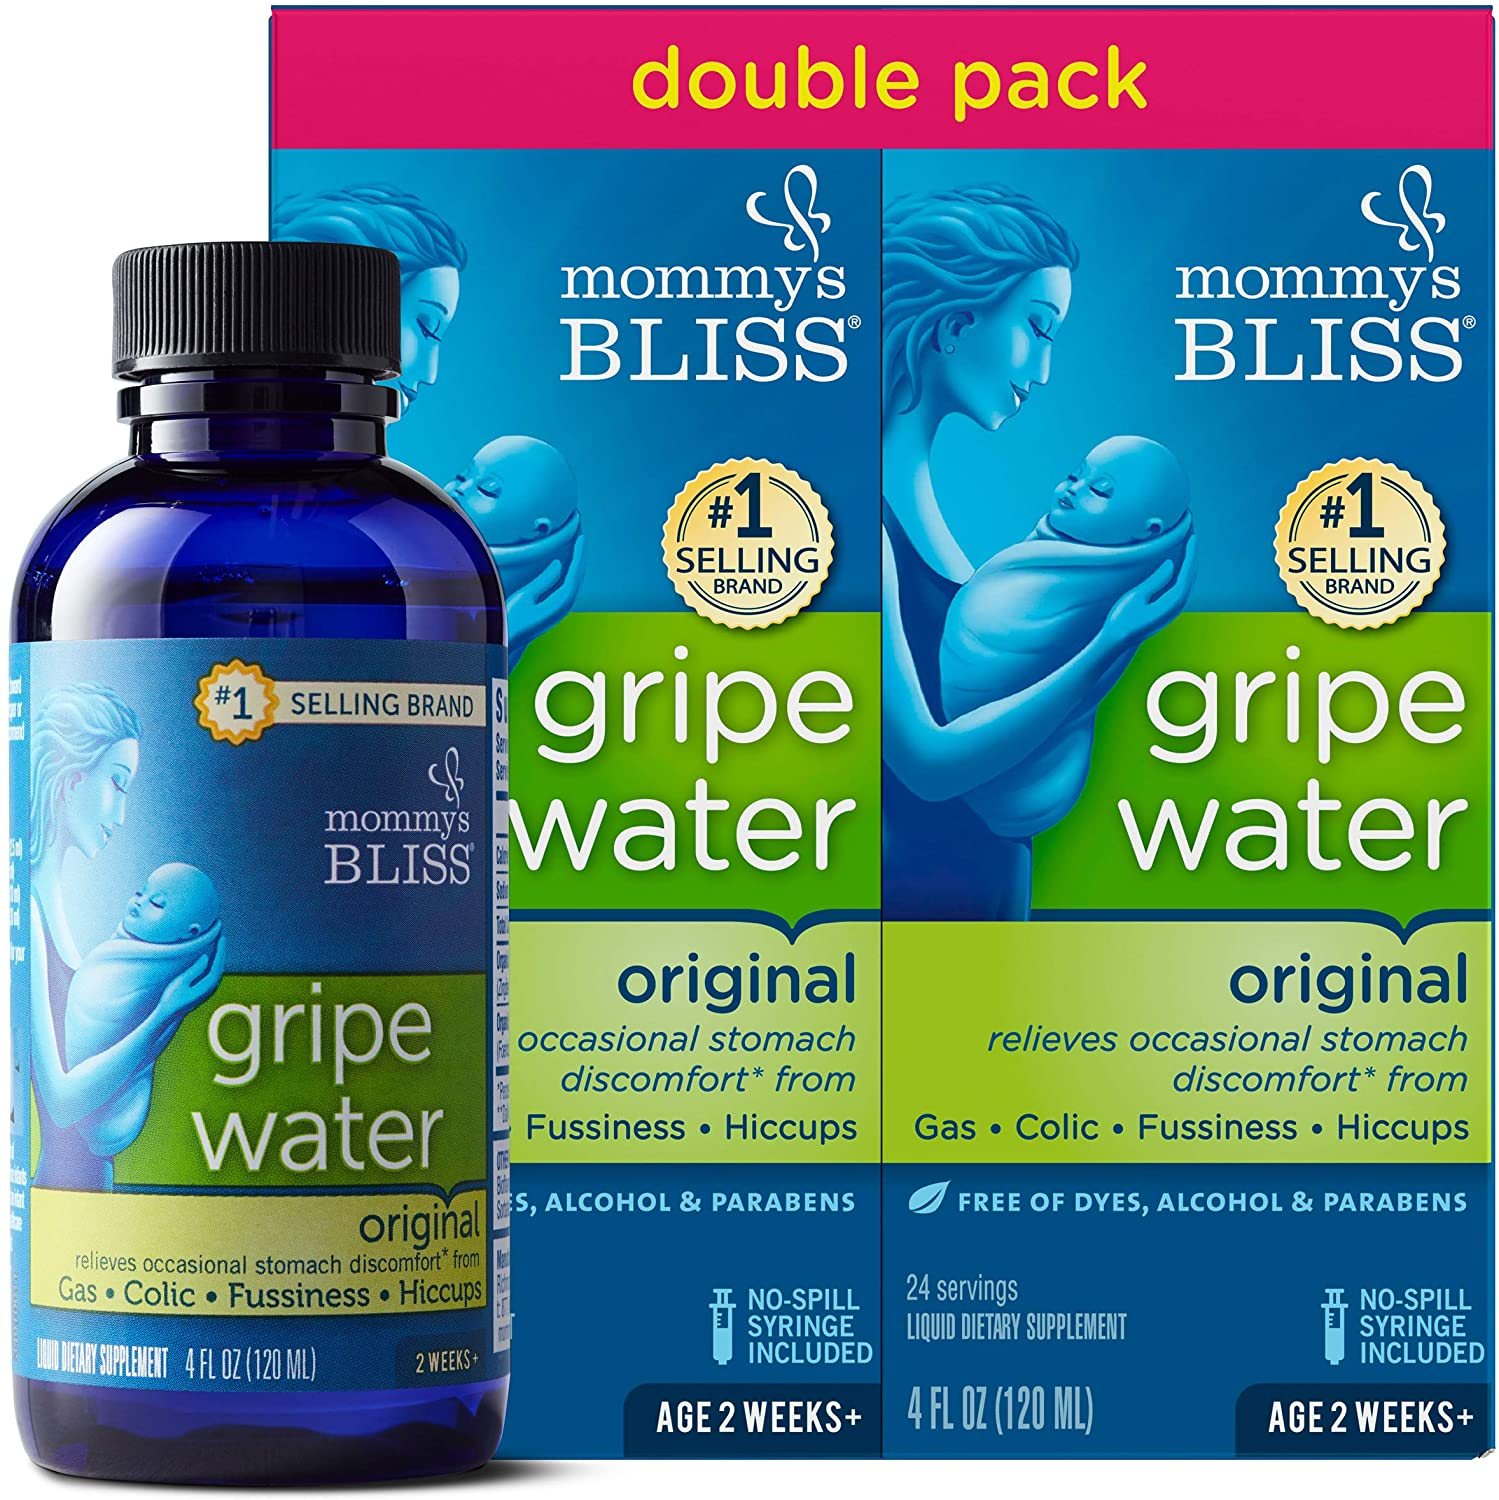 Mommy's Bliss - Gripe Water Original Double Pack - 8 FL OZ - 2'li Paket